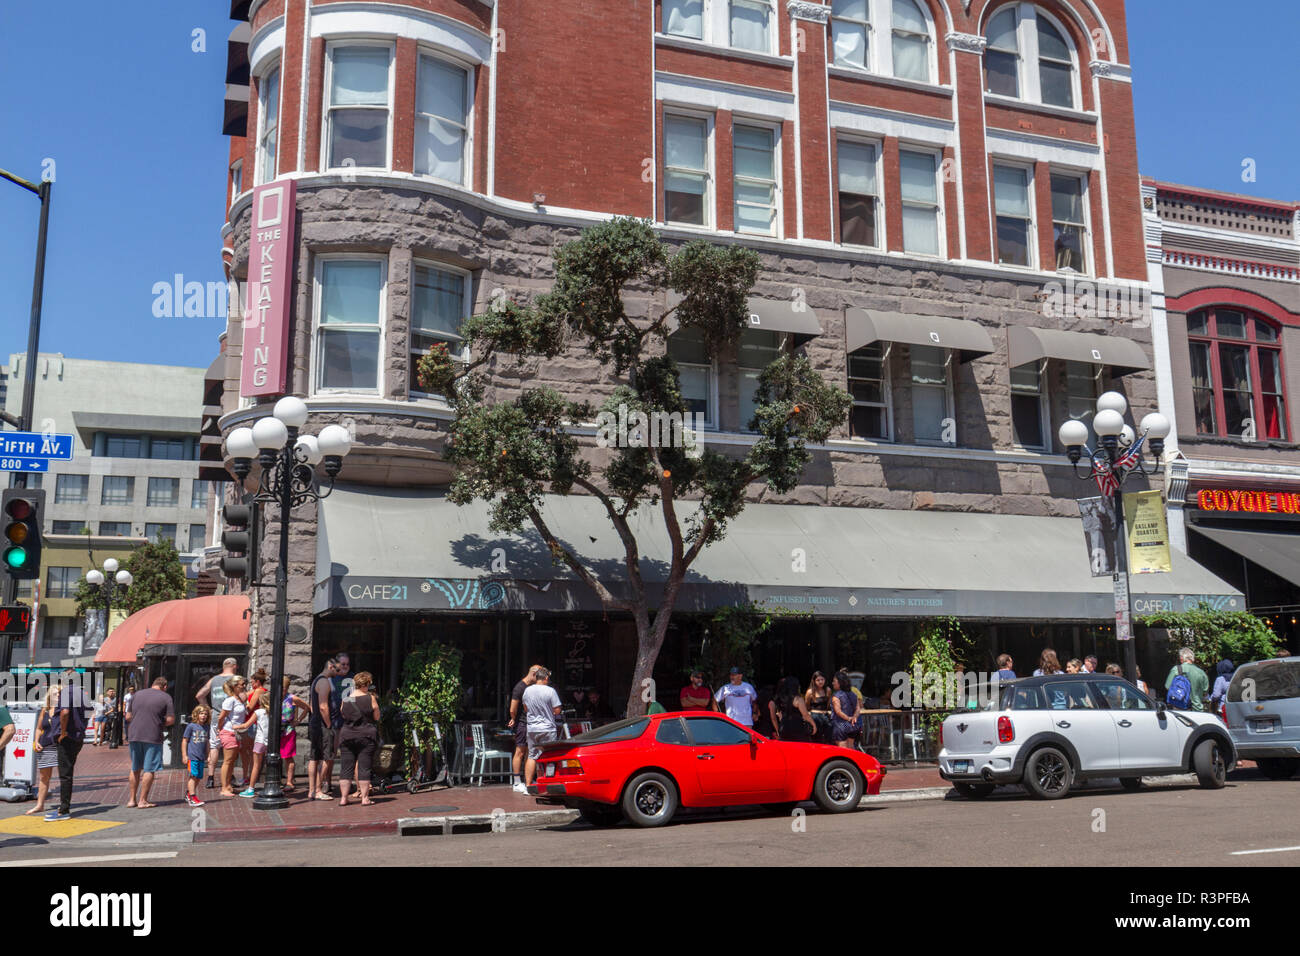 The Cafe 21 restaurant in the George J. Keating Building, in the Romanesque Revival style, Gaslamp Quarter, San Diego, California, United States, - Stock Image